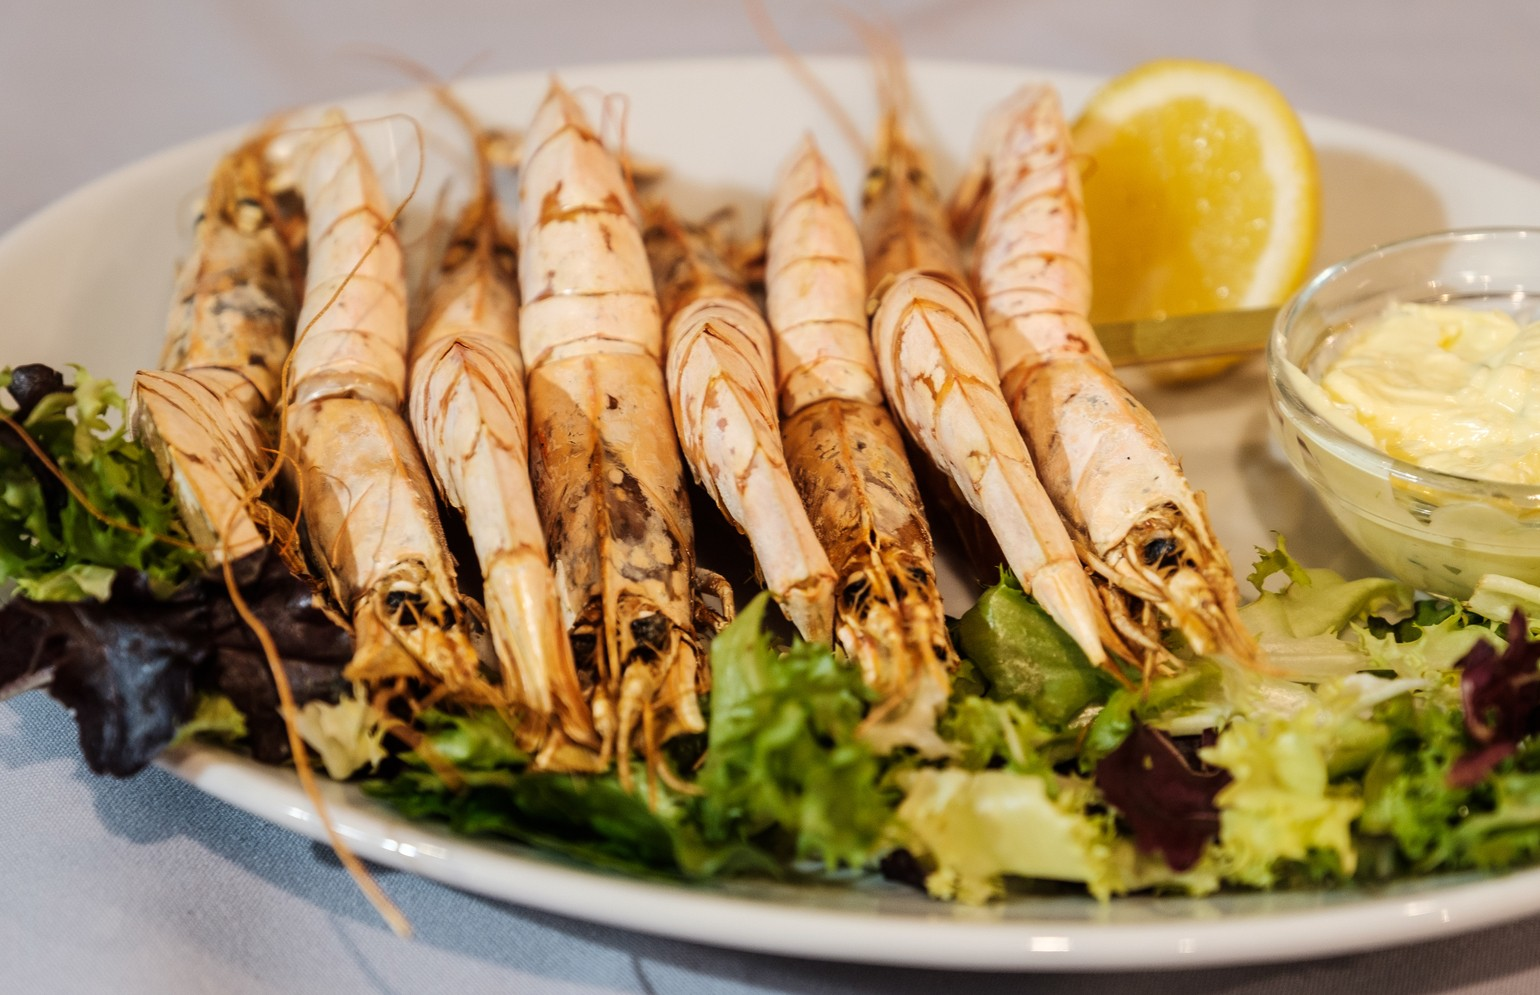 king-prawns-served-on-dish